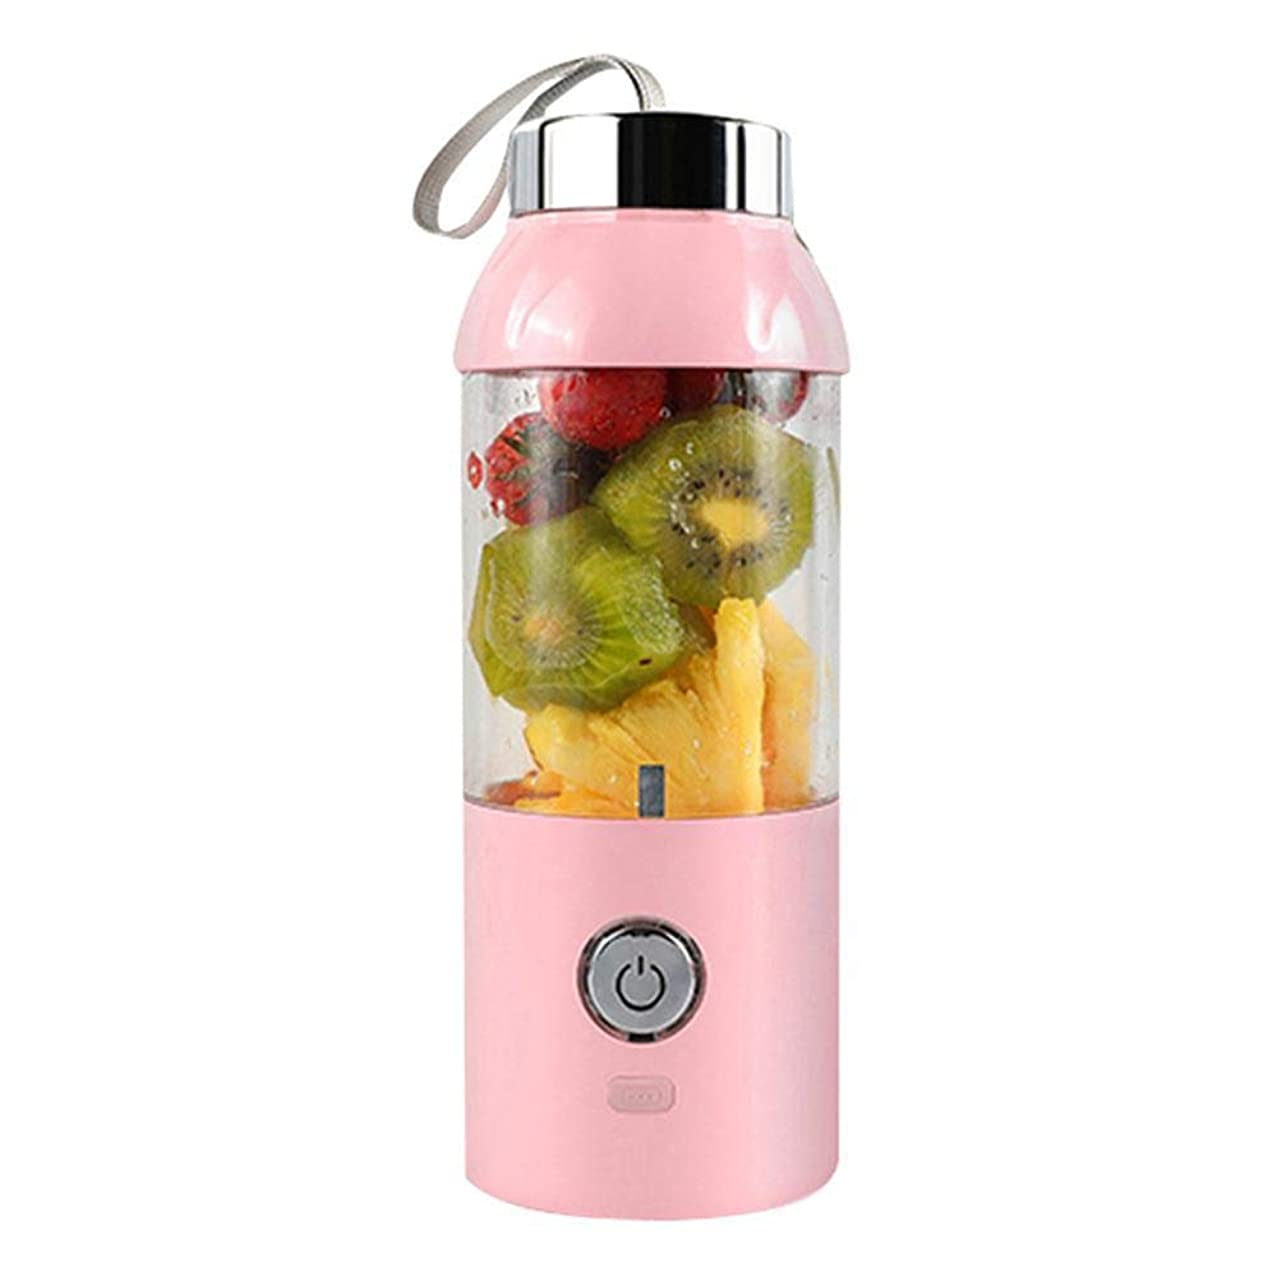 Umiwe 400ML Rechargeable USB Blender,Juicing Mixing Crush Ice Blender,Fruit Mixing Machine with USB Charger Cable(Pink)